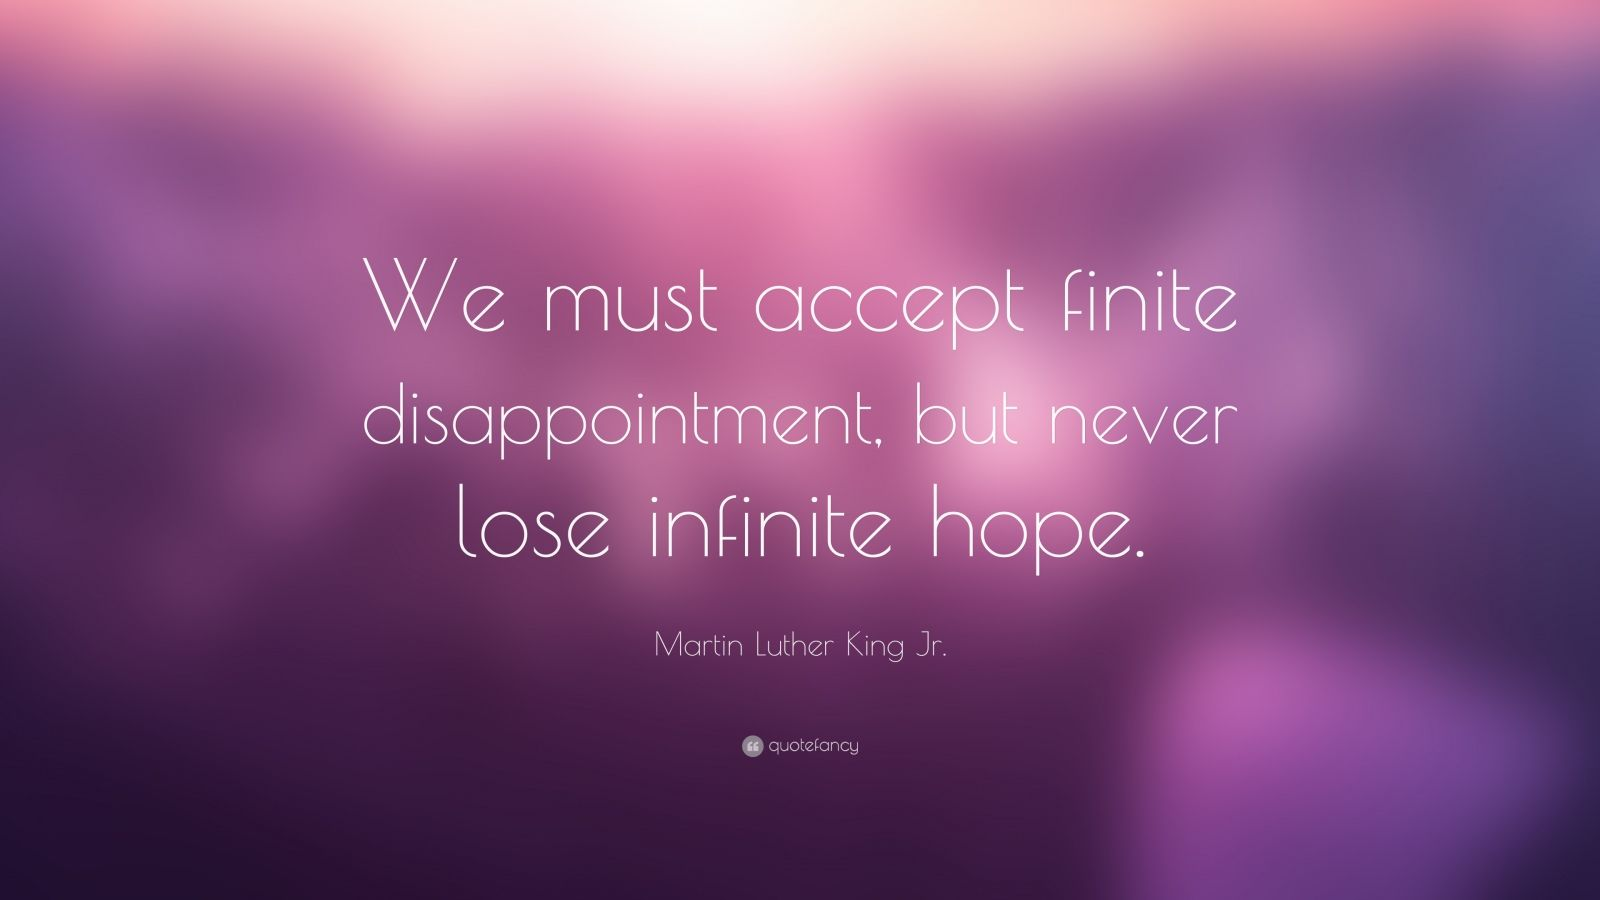 Love Disappointment Quotes Wallpapers Martin Luther King Jr Quotes 83 Wallpapers Quotefancy